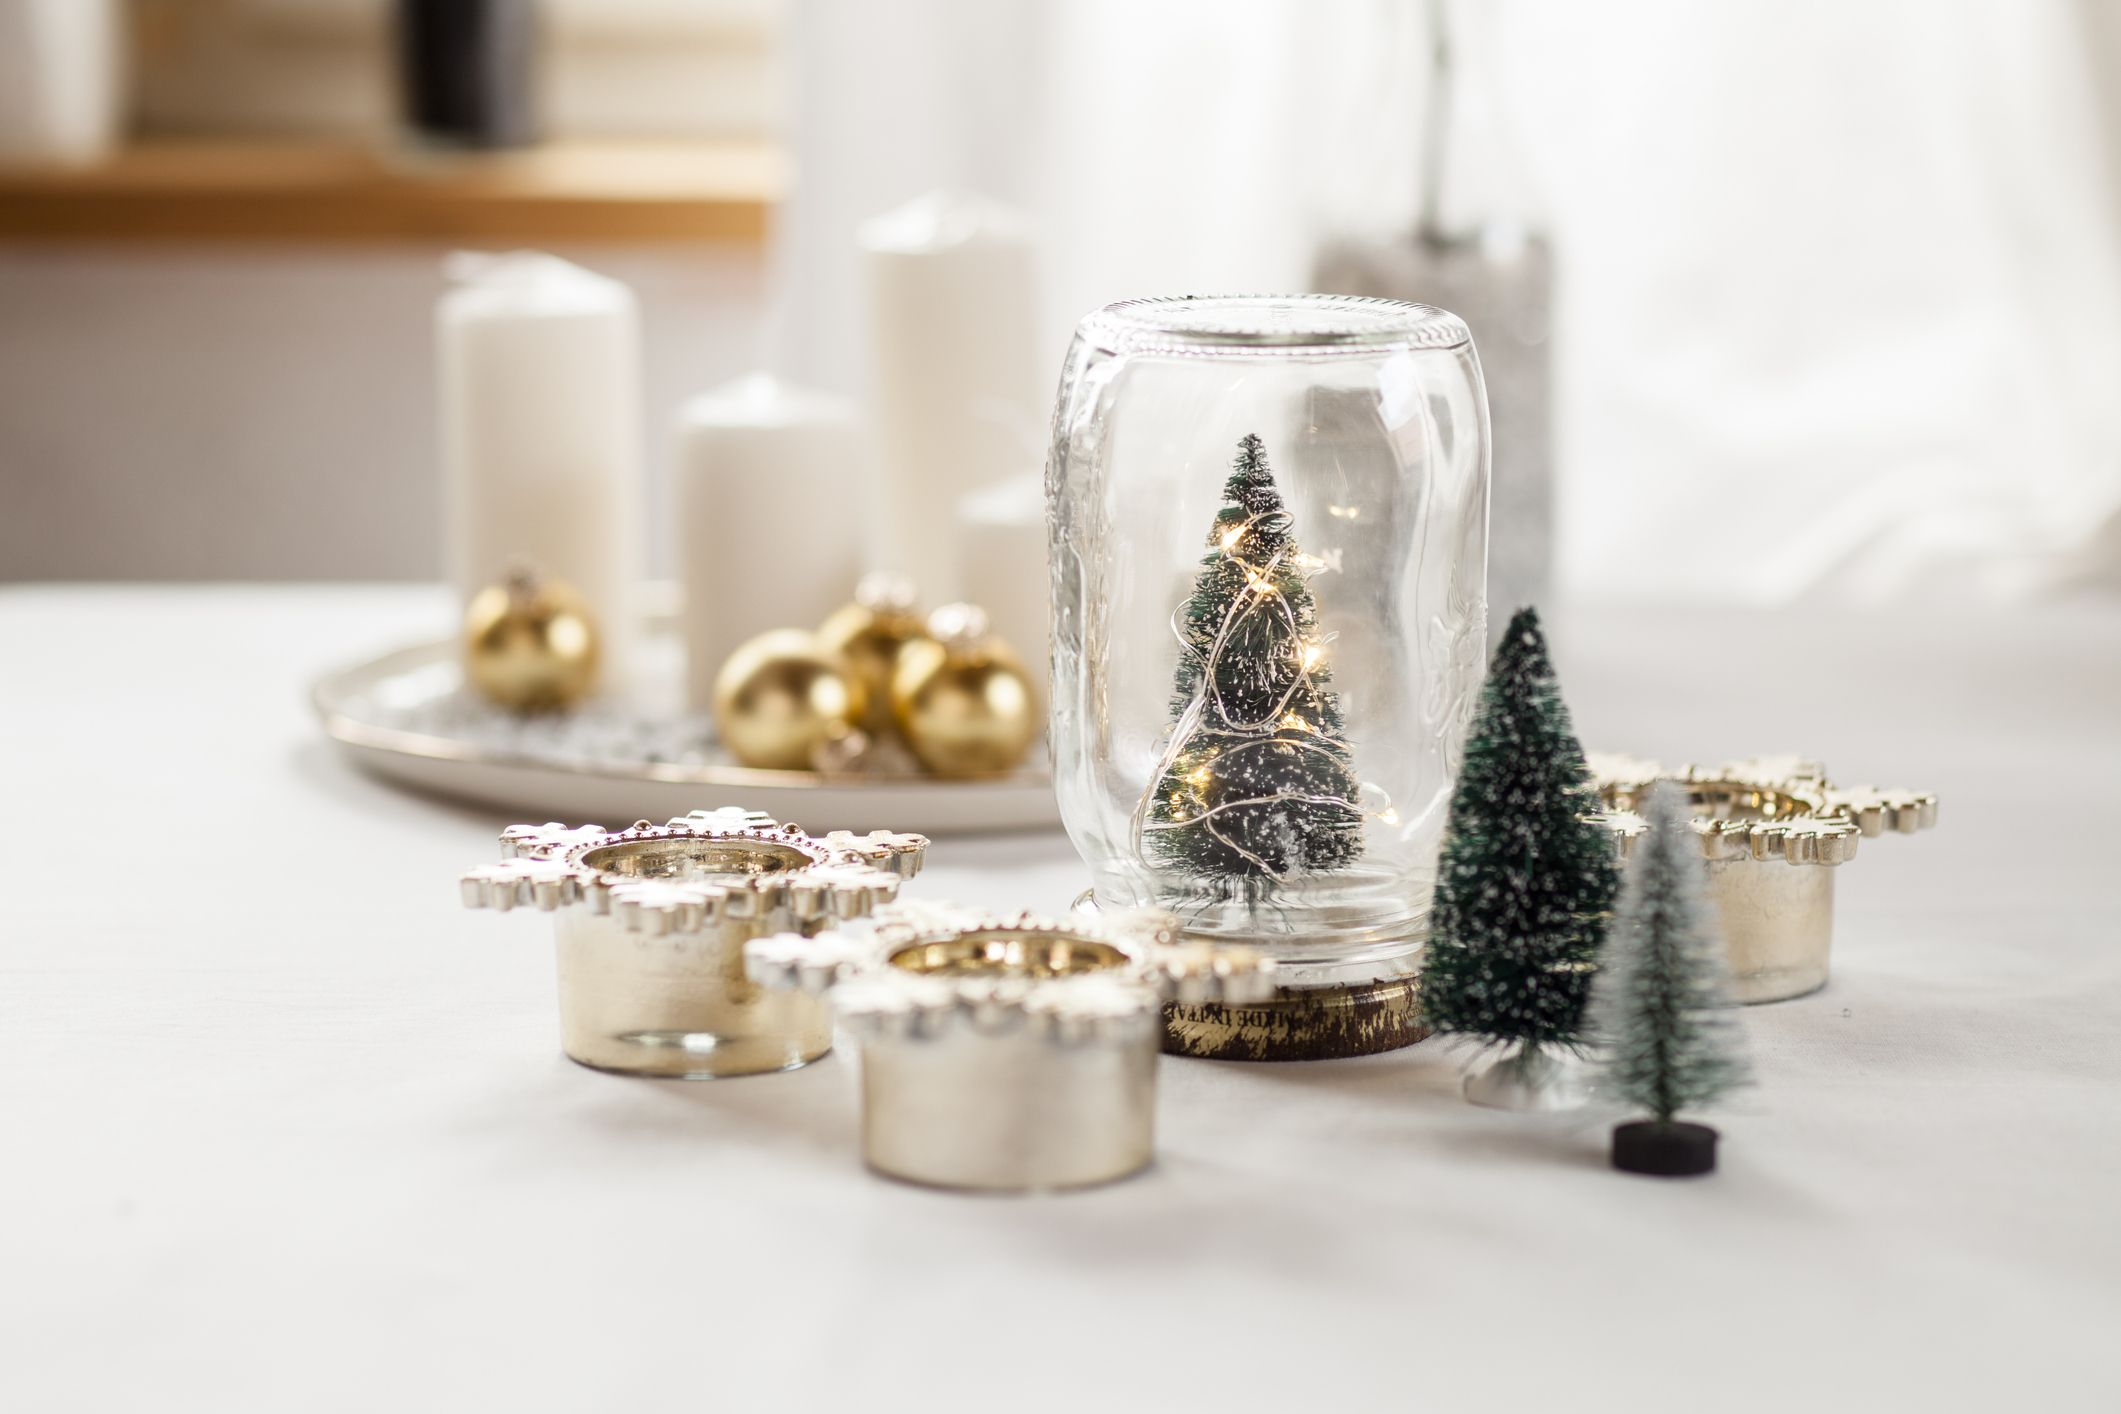 37 Best Small Christmas Trees , Ideas for Decorating Mini